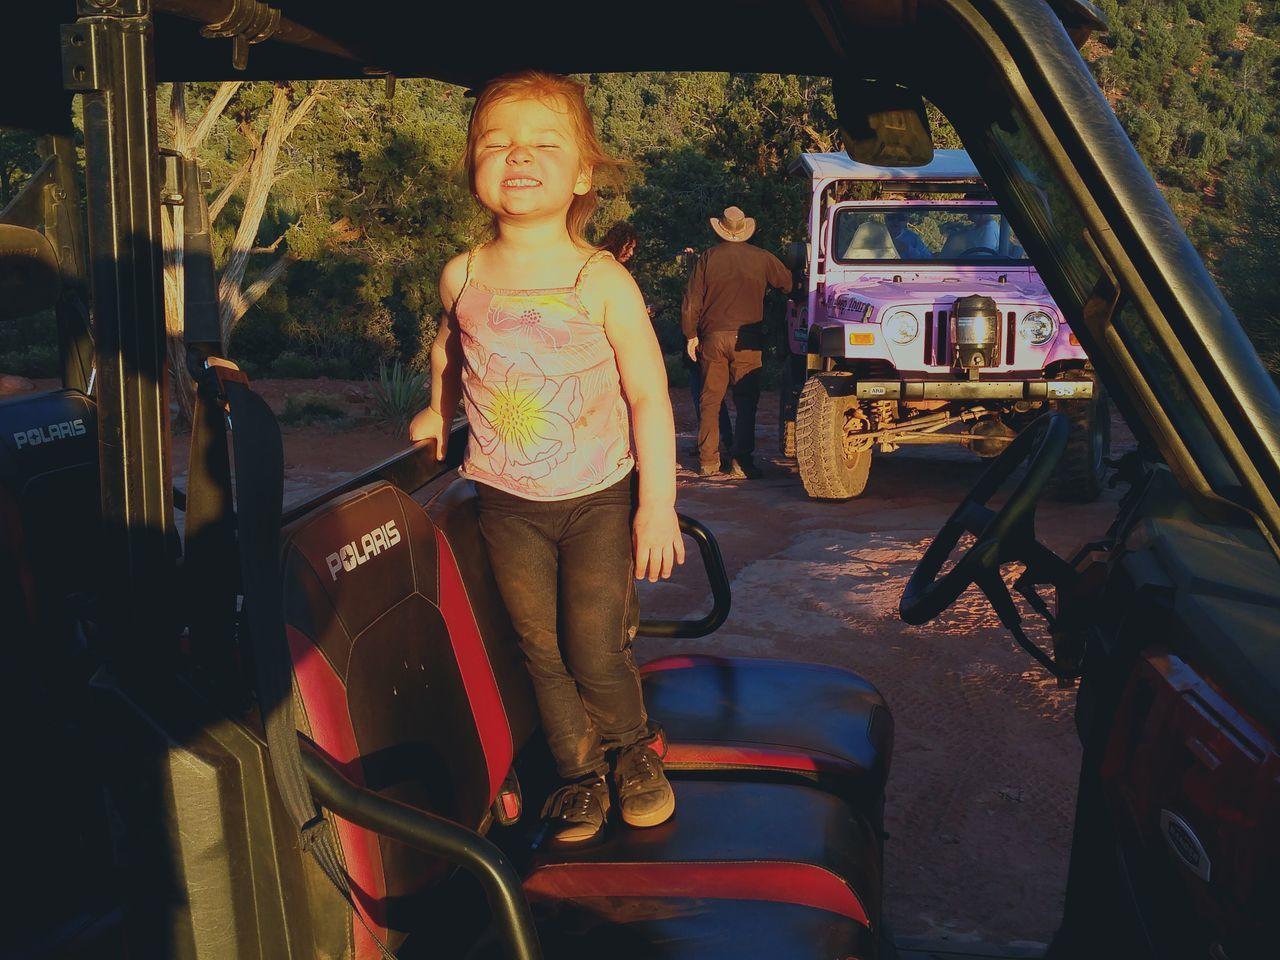 KIOMI COLLECTION PRINCESS PRETTY.AWESOME IN SEDONA. ARIZONA 4x4 MILES OF SMILES FREEWHEELIN' LOVE U ALL